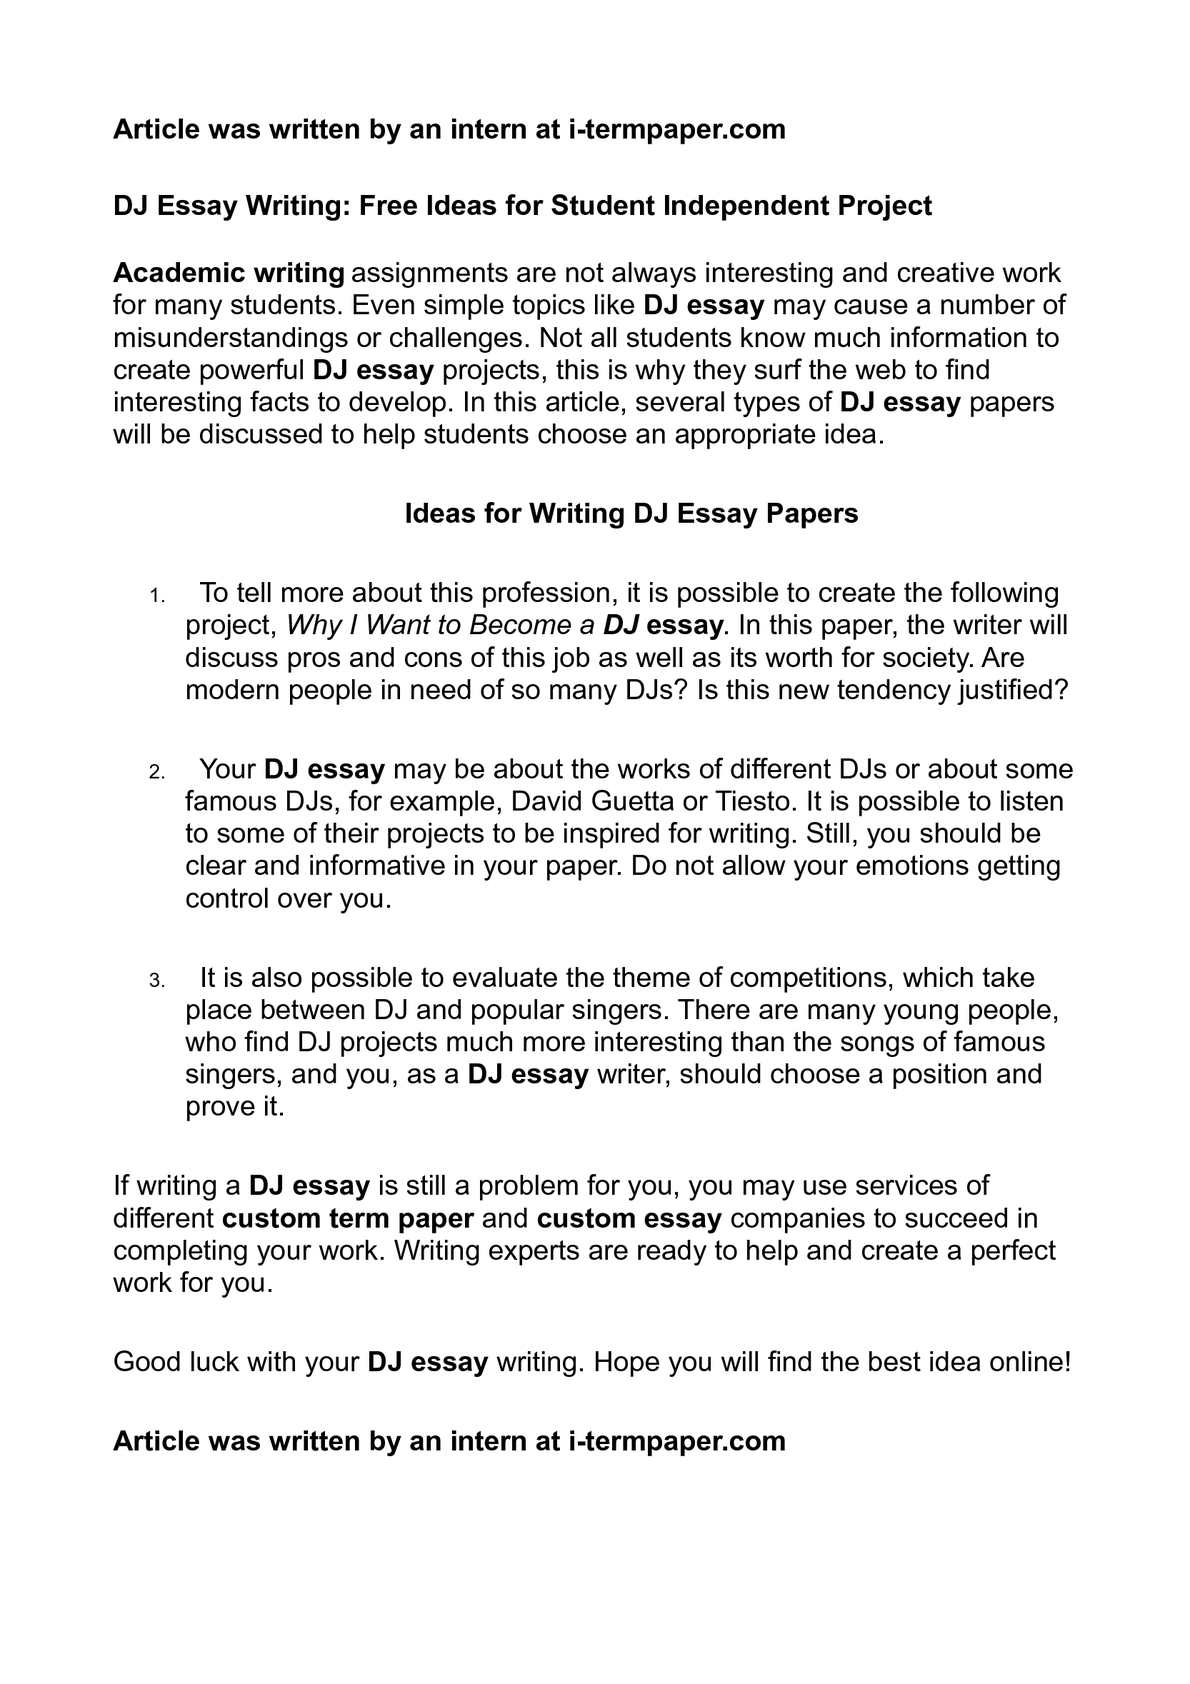 003 Essay Writer Free P1 Amazing Trial Unblocked Software Full